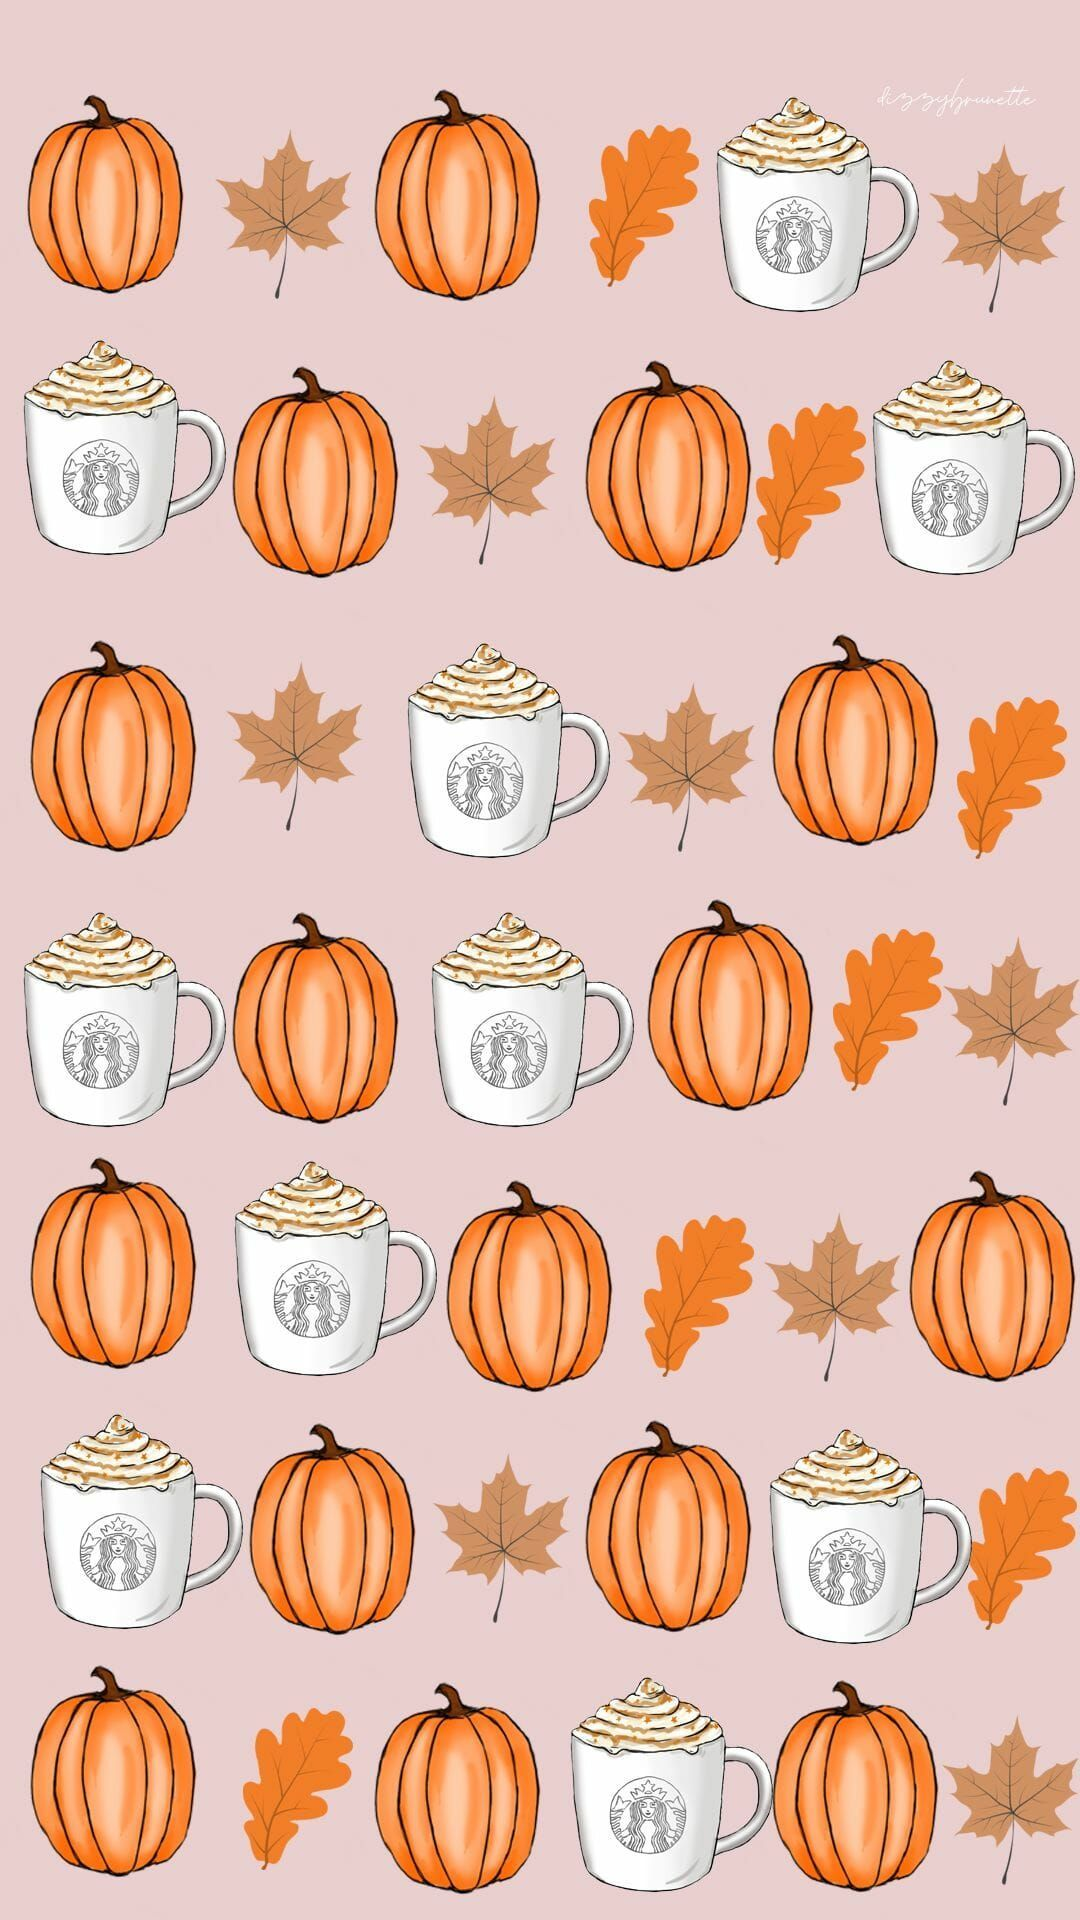 31 Free Amazing Fall Iphone Wallpapers The Chic Pursuit In 2020 Iphone Wallpaper Fall Cute Fall Wallpaper Fall Wallpaper